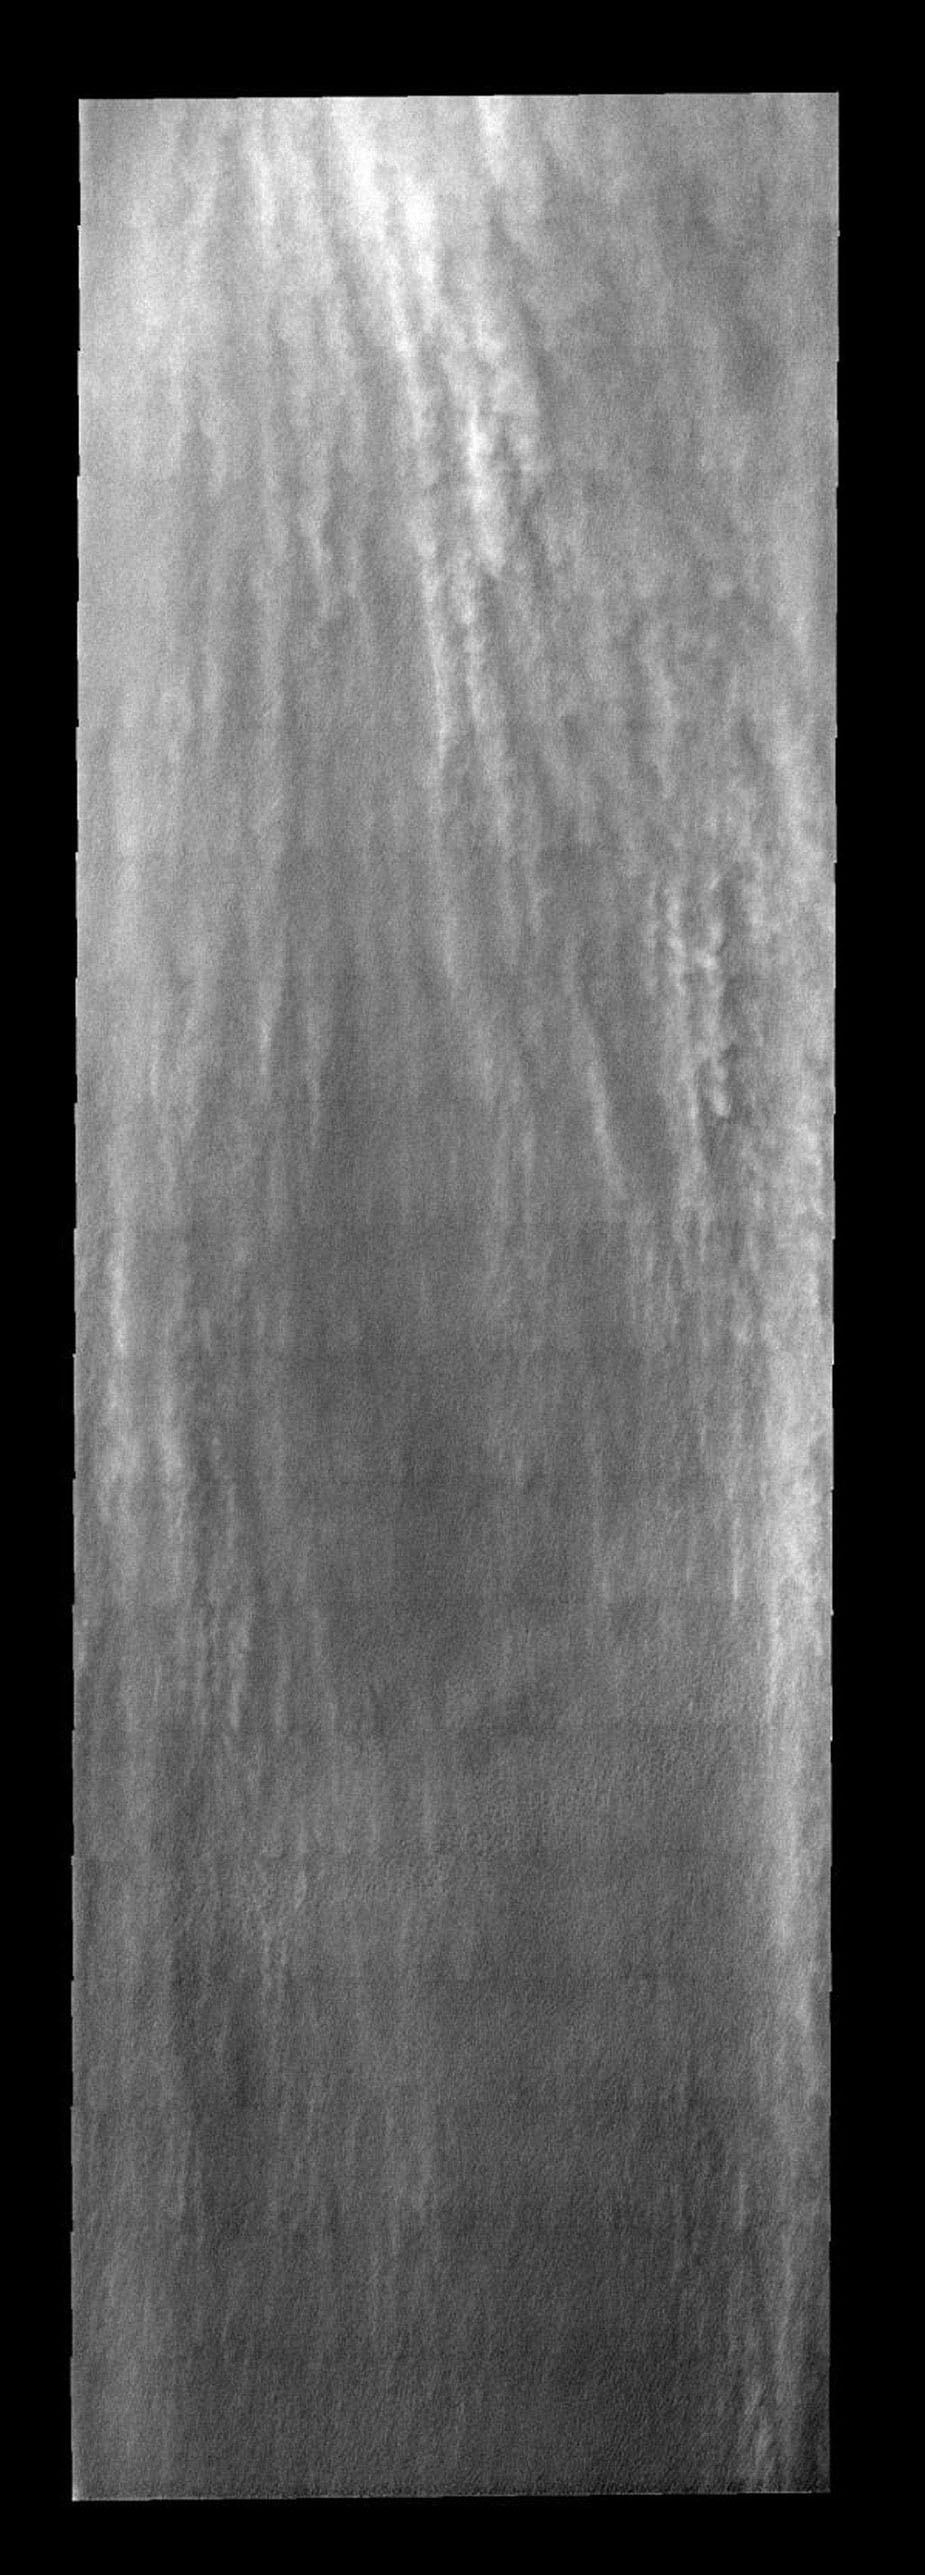 These linear clouds are part of a large storm front that occurred near Mars' south pole during late summer as seen by NASA's 2001 Mars Odyssey.